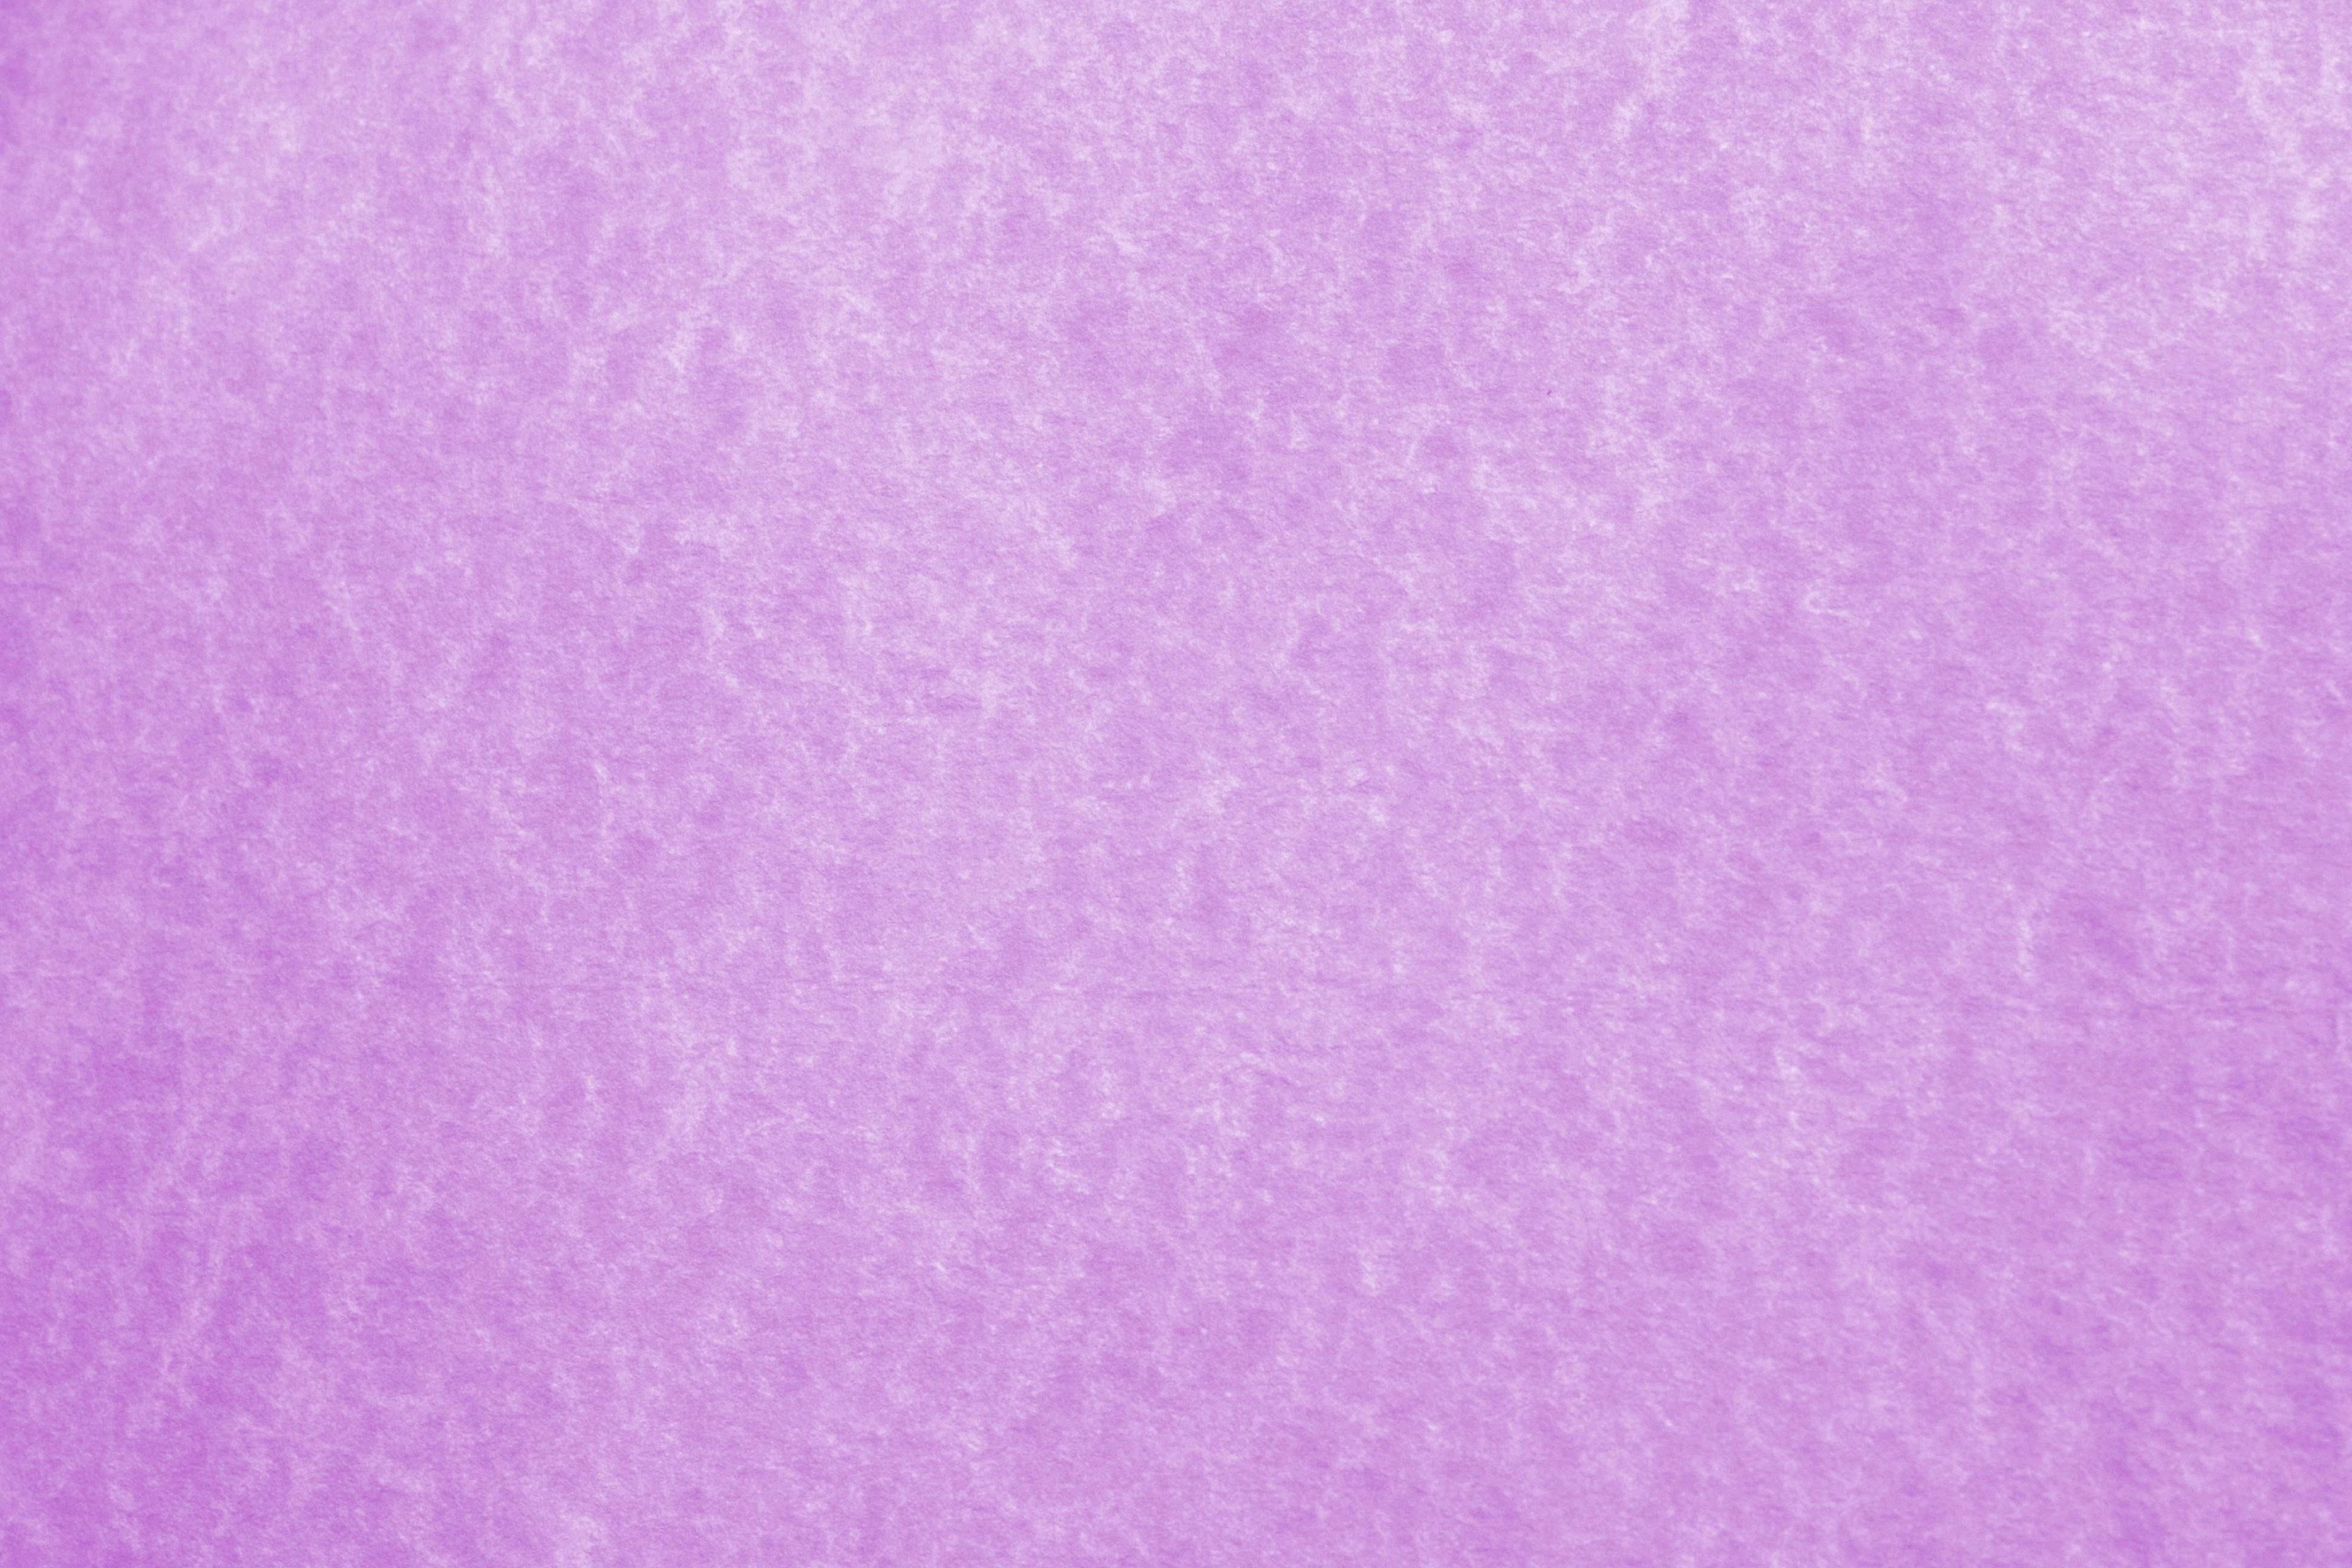 Light Purple Background Powerpoint Backgrounds For Free